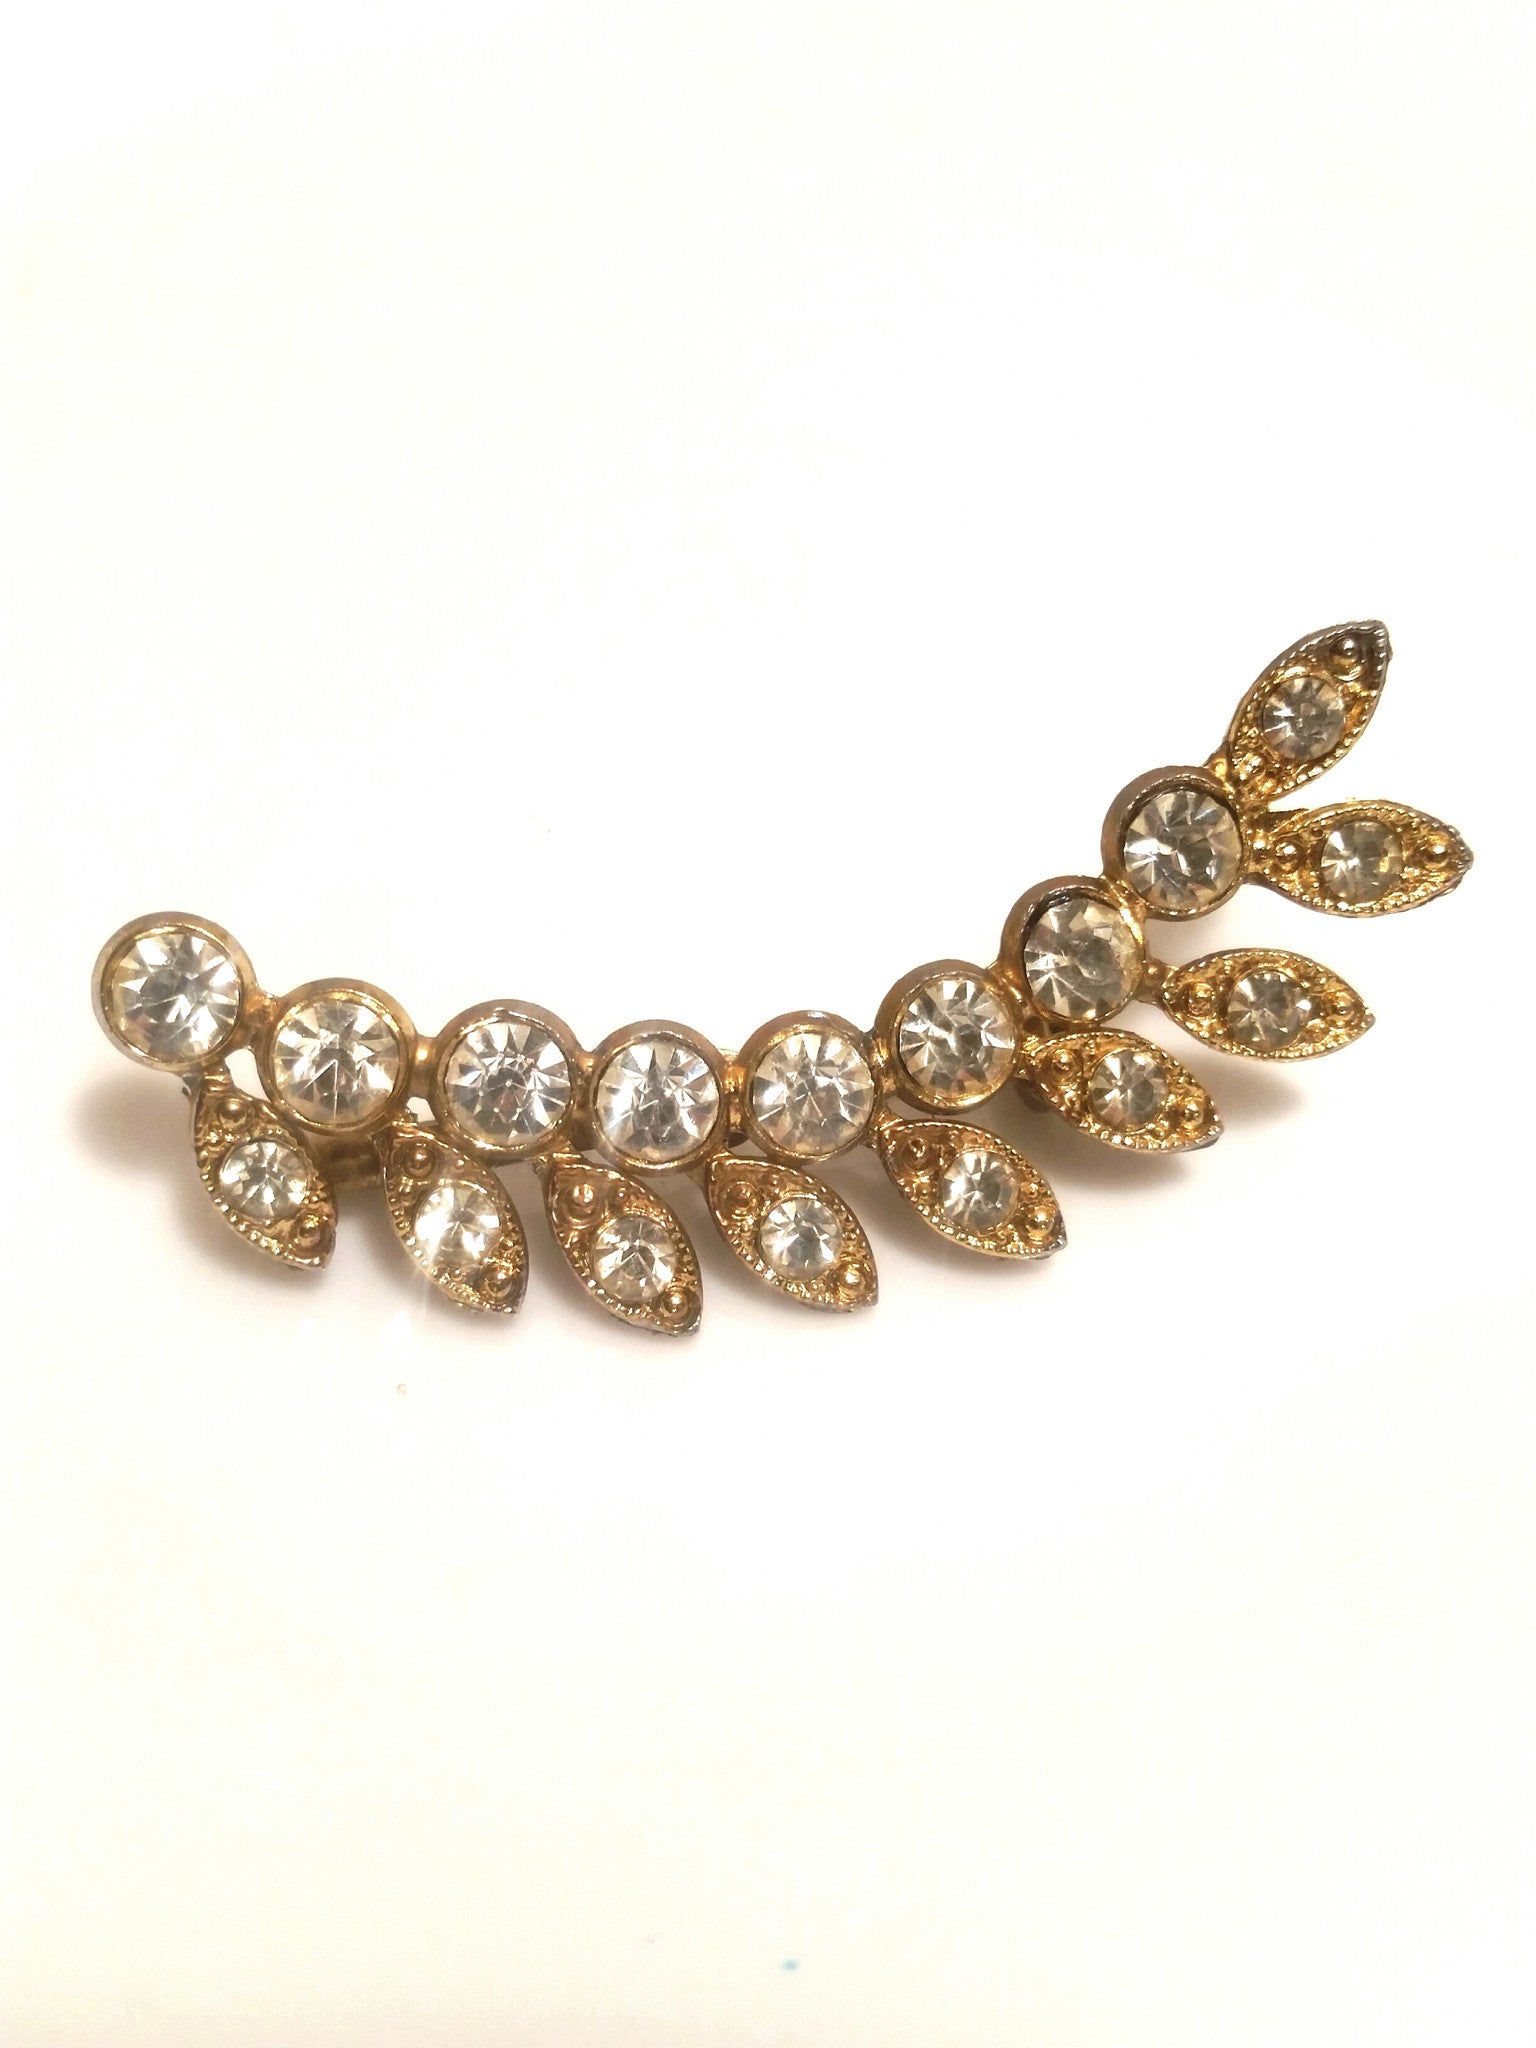 Vintage Brooch - Rhinestone Jewelry for Women